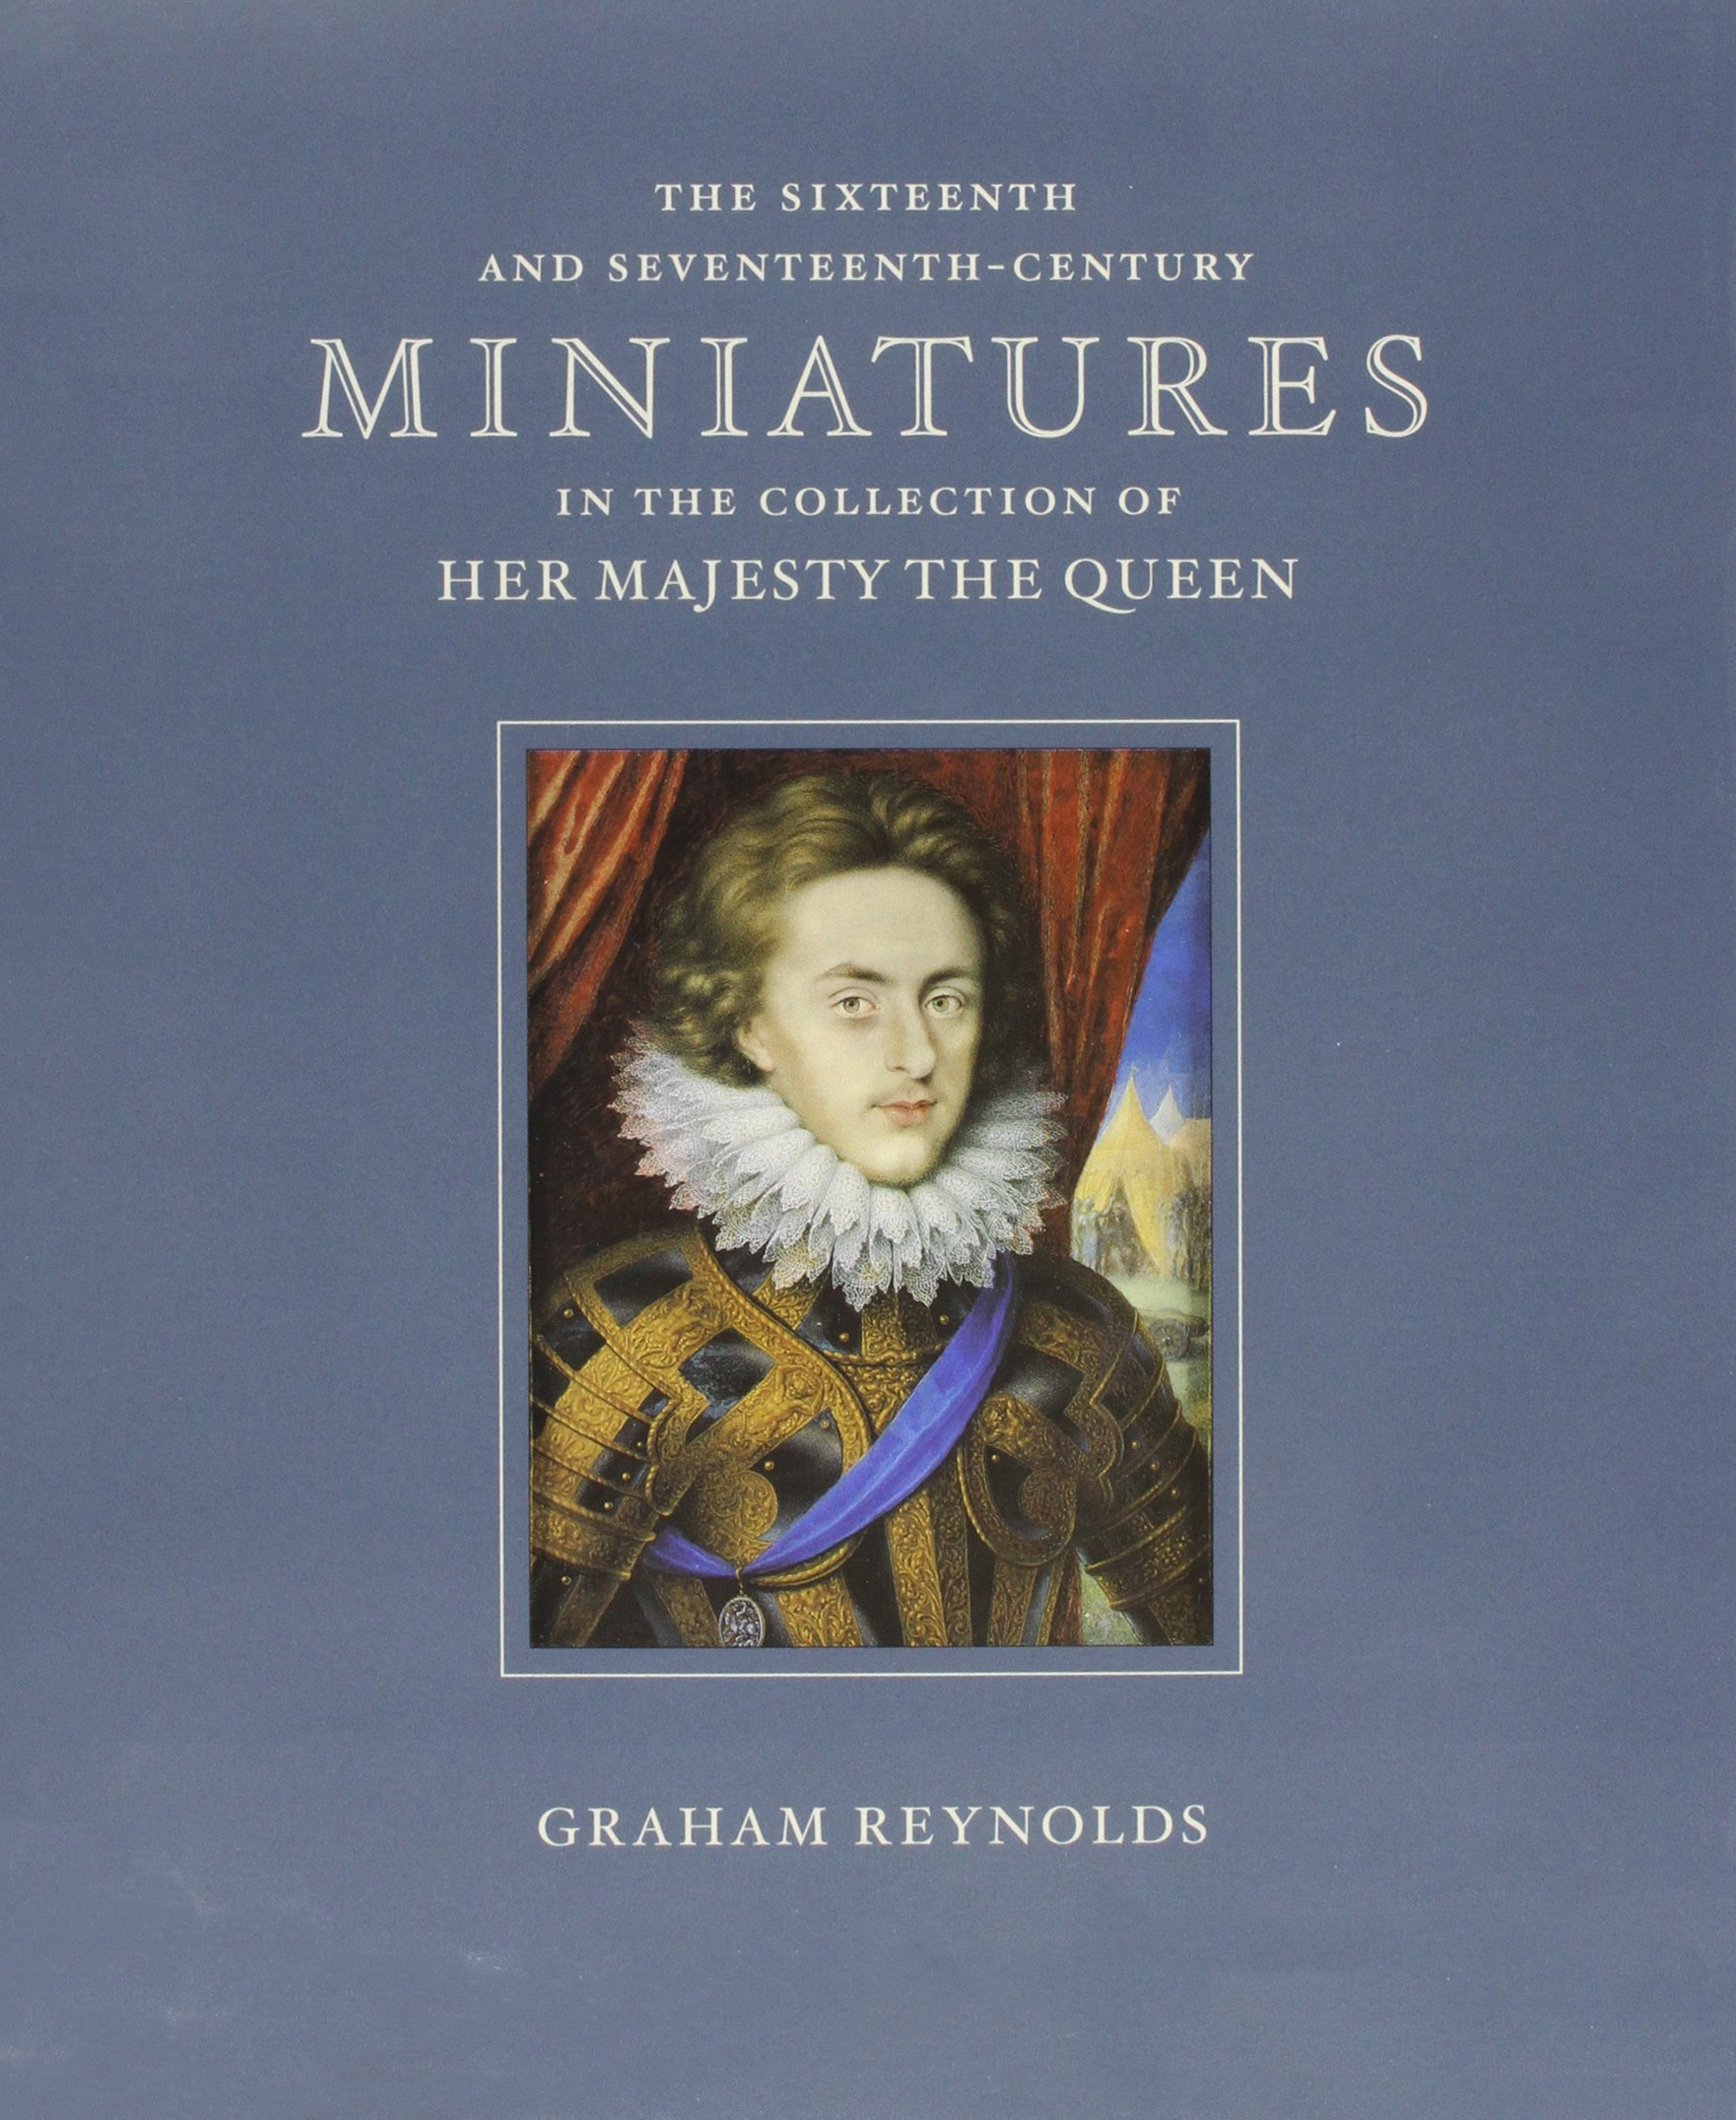 The Sixteenth and Seventeenth-Century Miniatures in the Collection Her Majesty the Queen